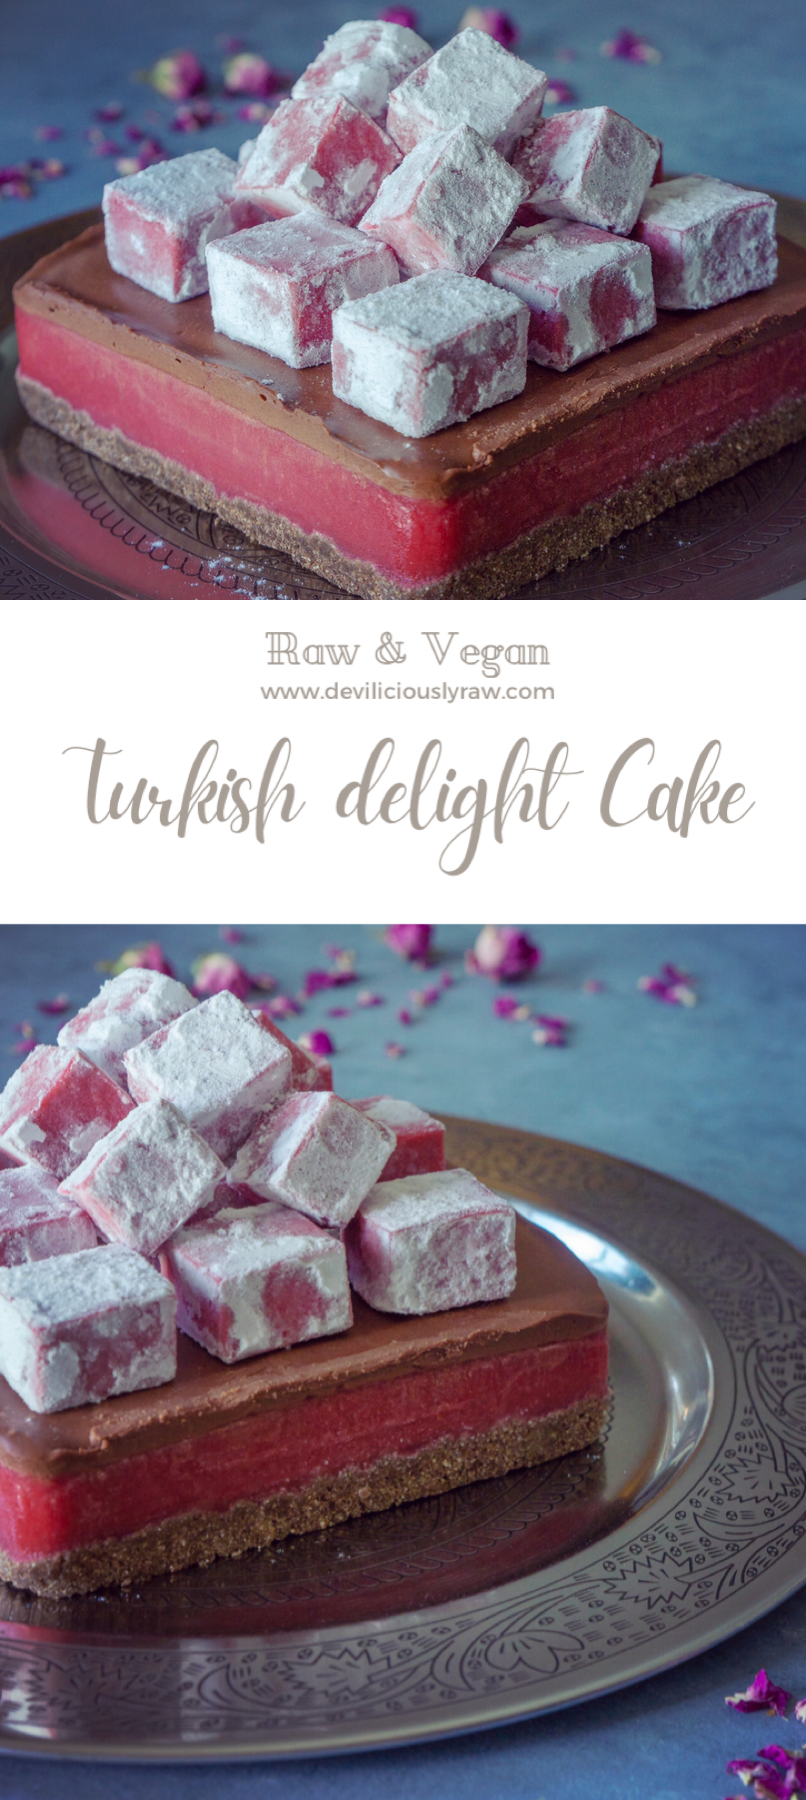 Turkish Delight Cake